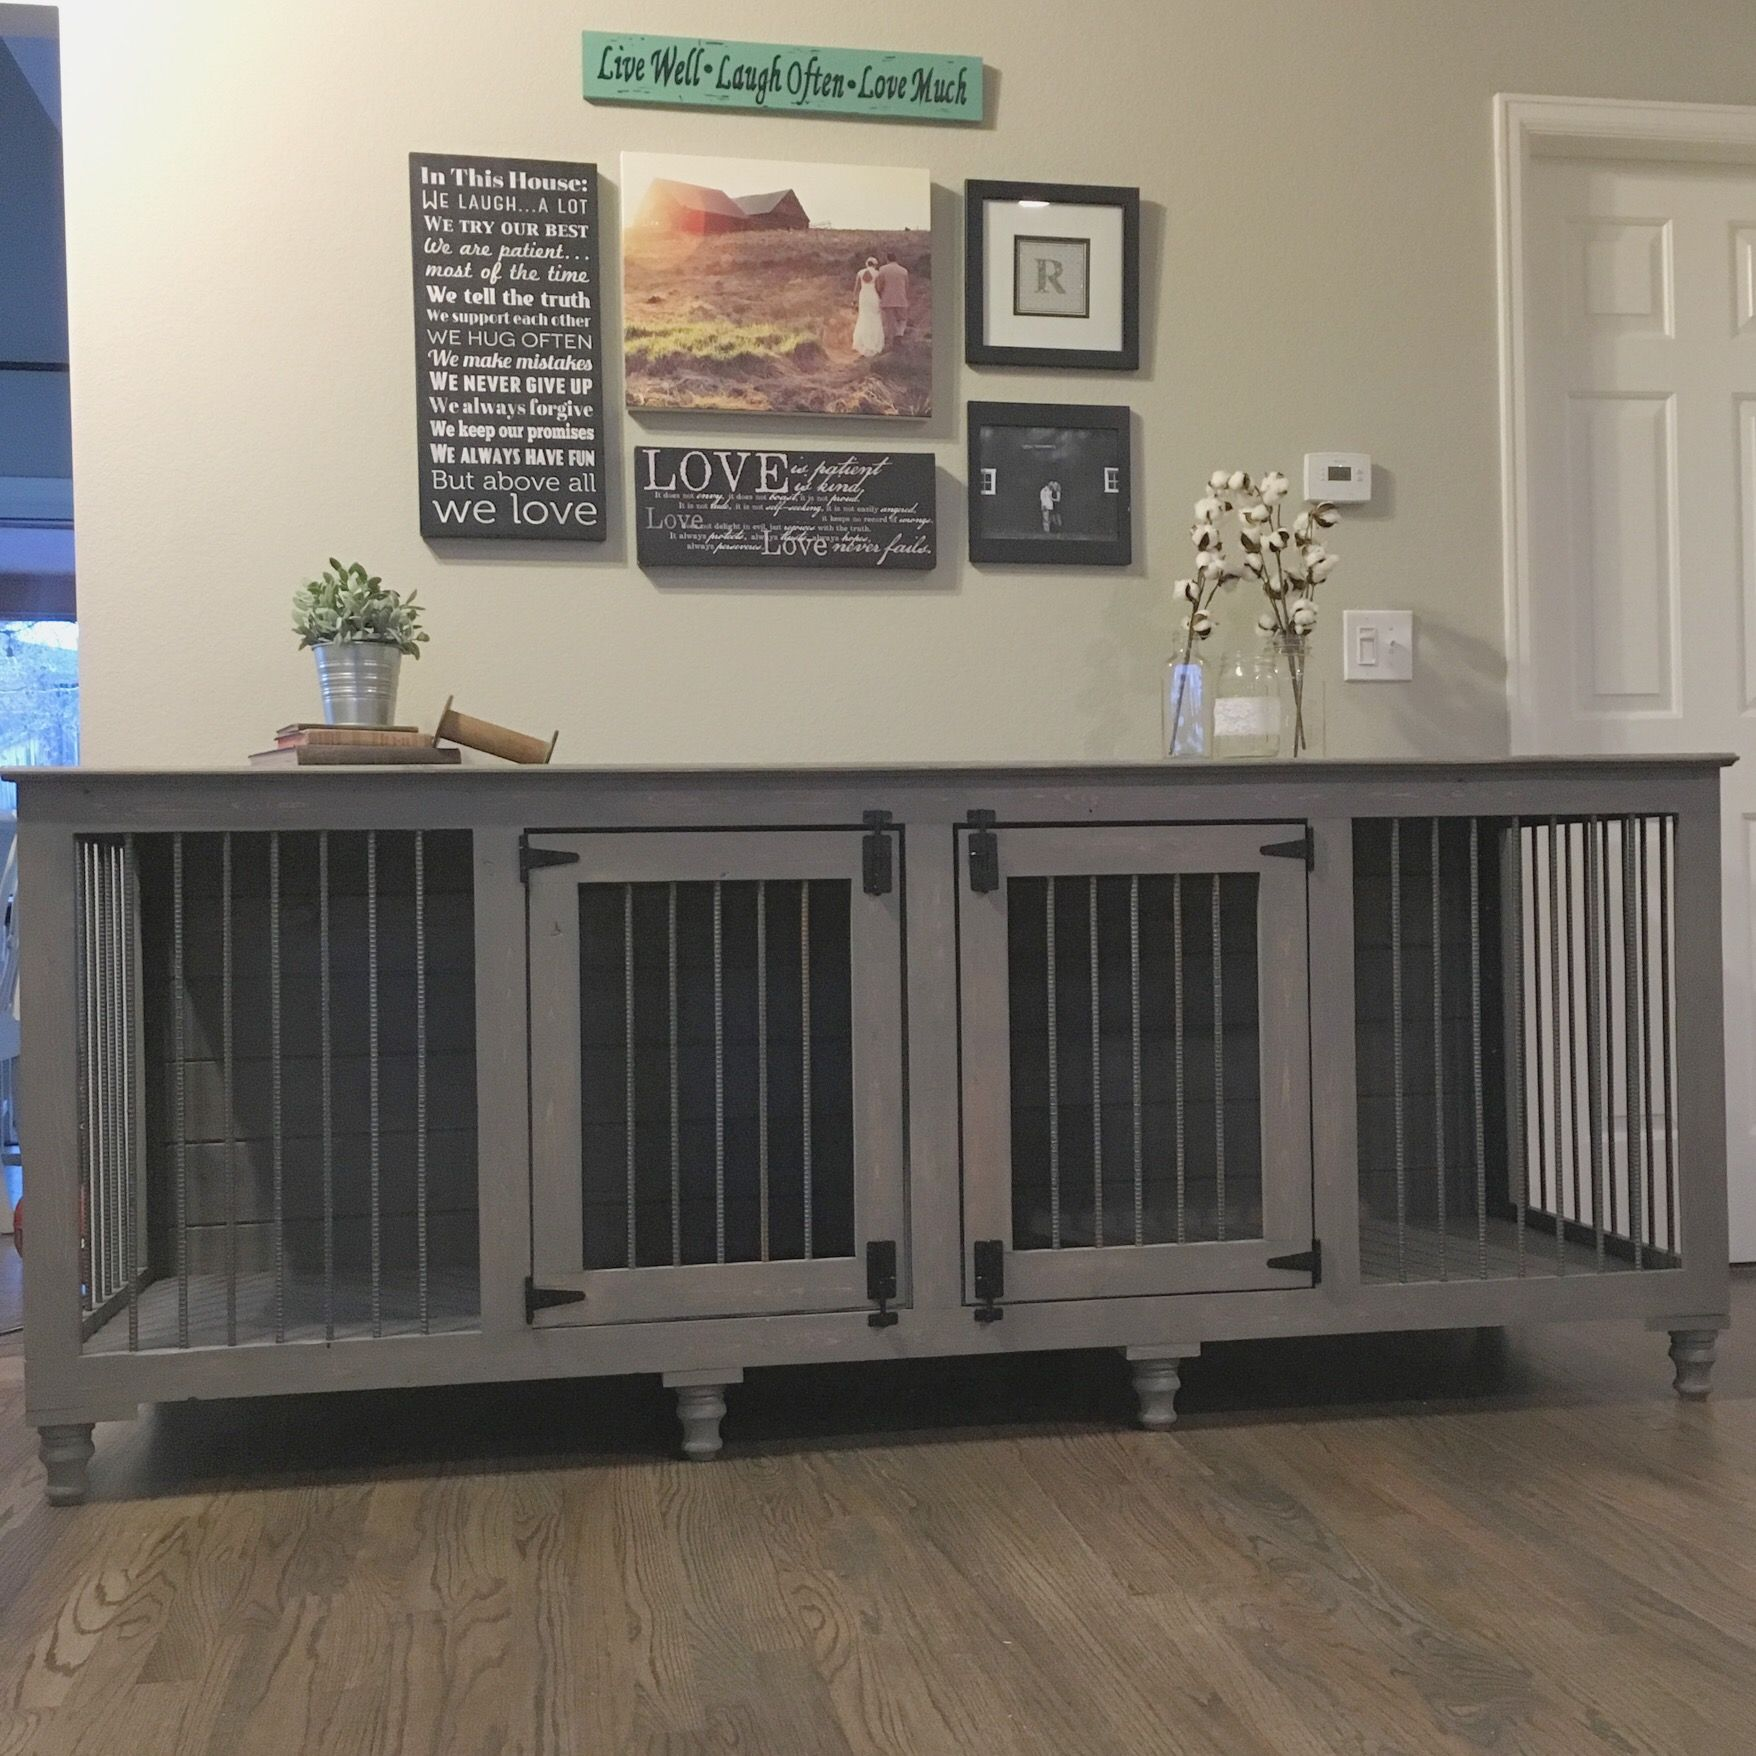 fancy dog crates furniture. the first beautiful decorative indoor wooden dog kennel built for two dogs itu0027s more than a crate but truly inspiring furniture fancy crates